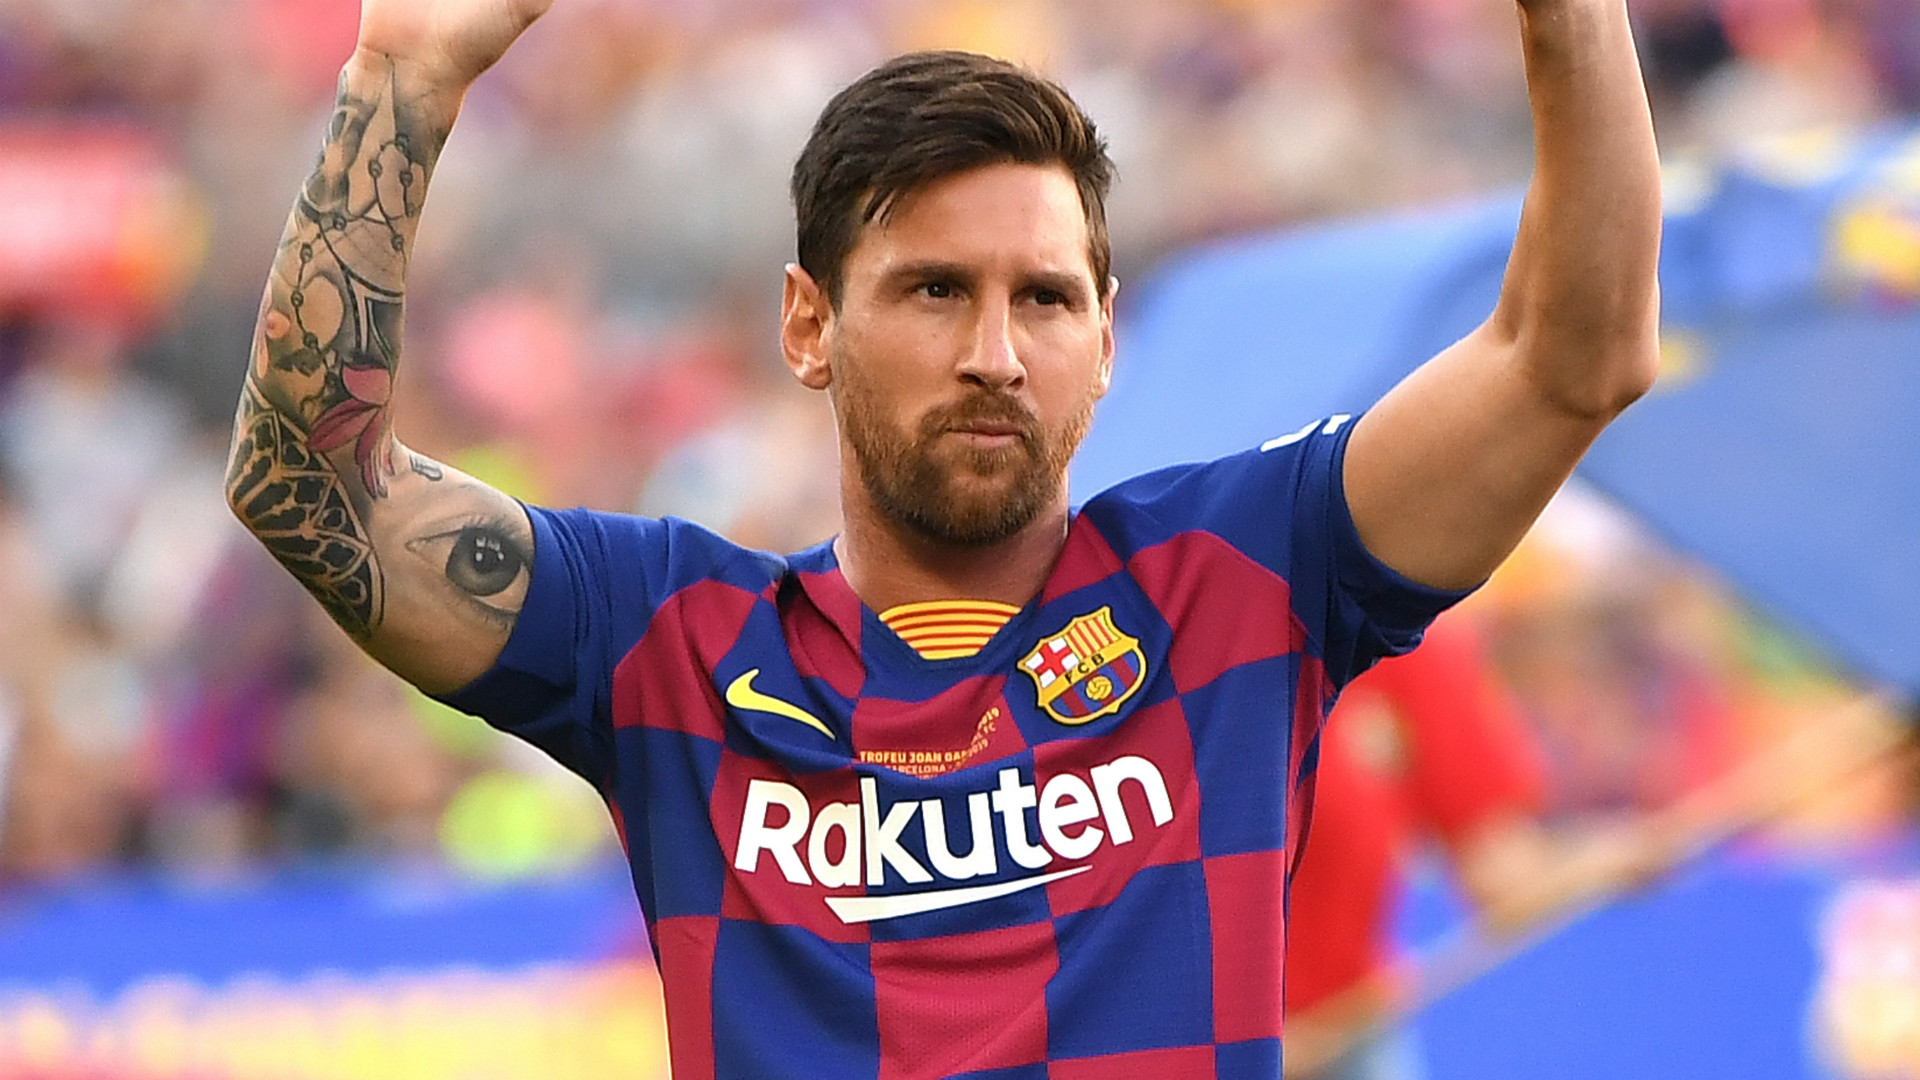 Barcelona fans will be celebrating the fact they will get to watch their beloved Lionel Messi for another season after he announced he would be staying at the Nou Camp on Friday. But the result of the high-profile arm wrestle between the world's most iconic soccer player and one of its biggest clubs appears to […]